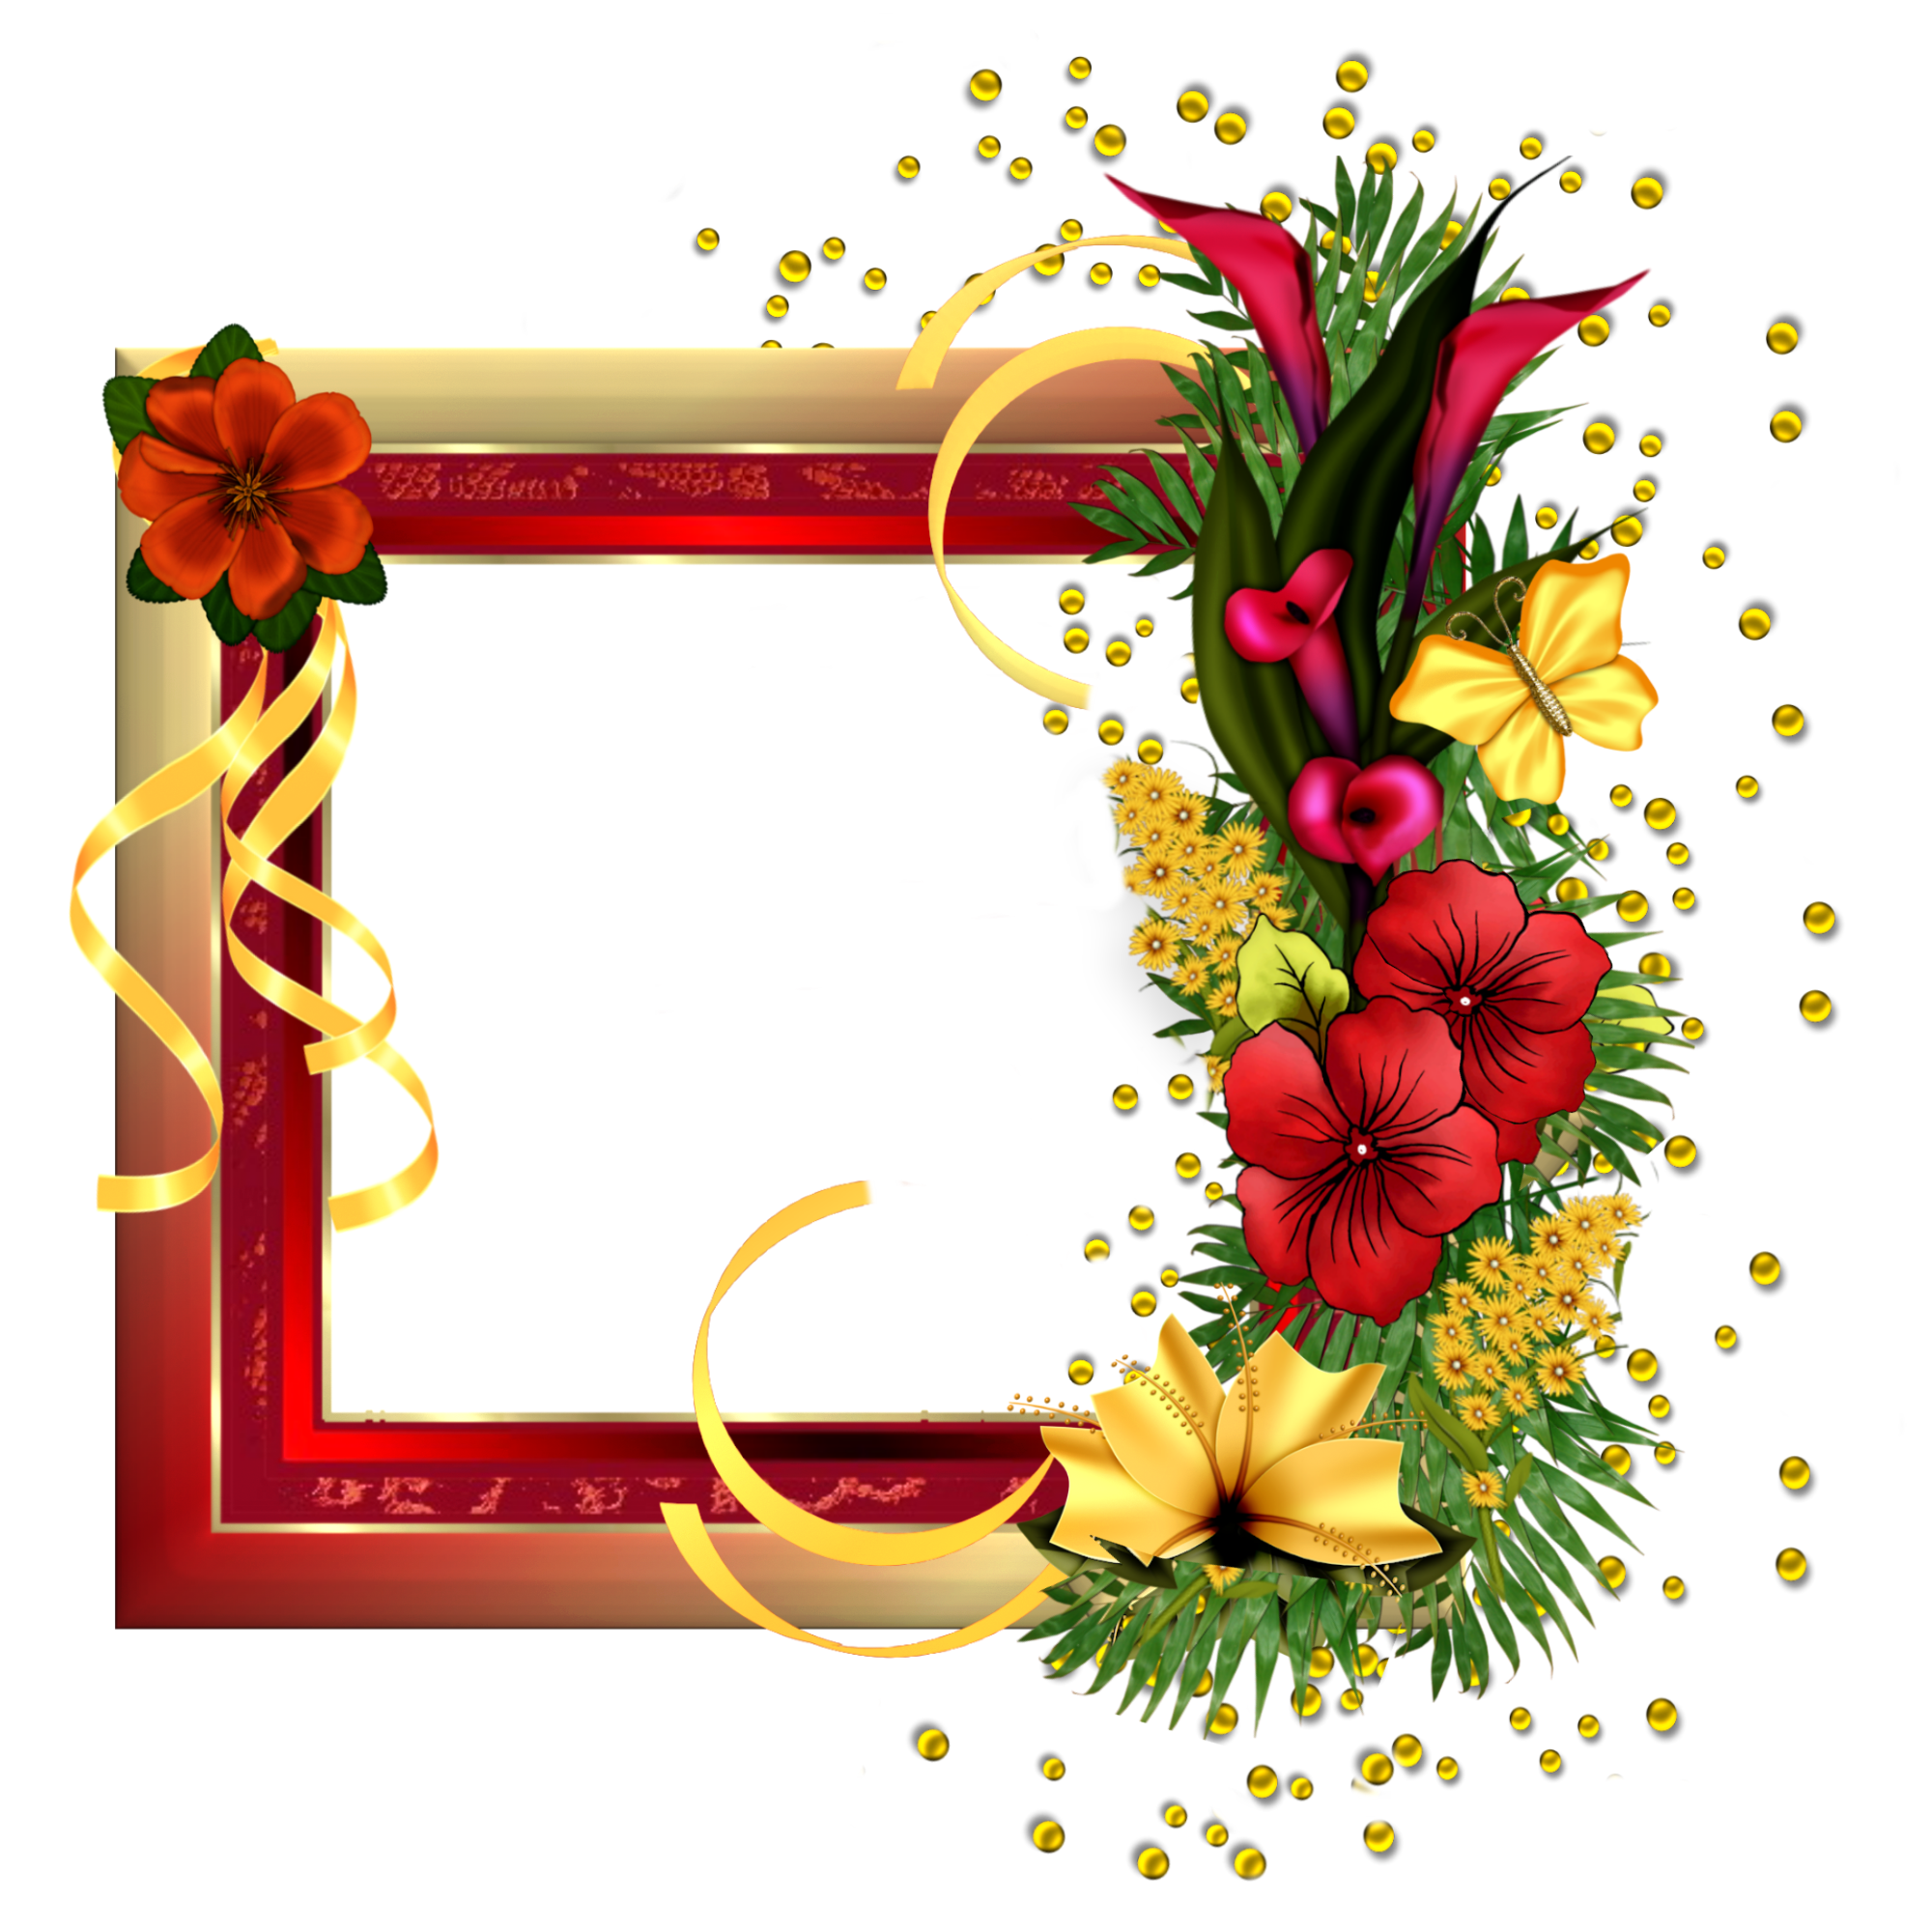 Red Flower clipart nice view #11